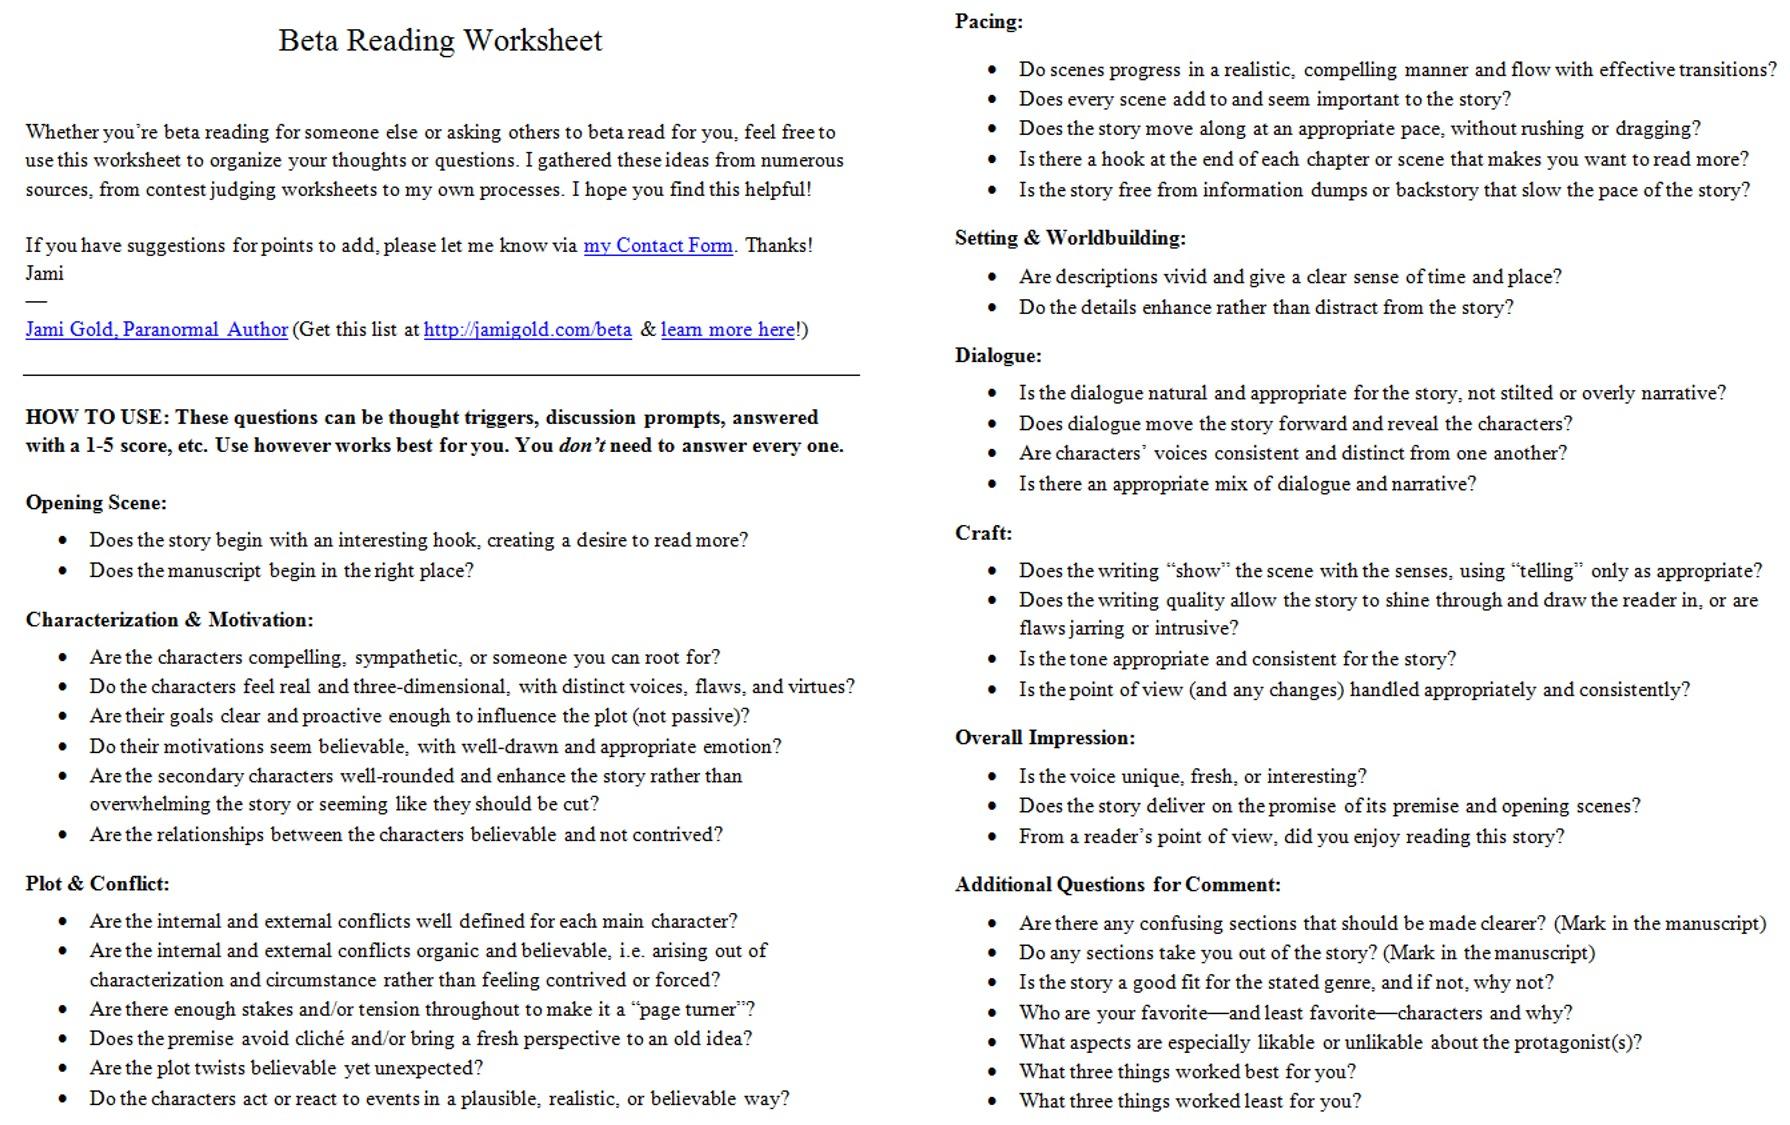 Aldiablosus  Marvelous Worksheets For Writers  Jami Gold Paranormal Author With Likable Screen Shot Of The Twopage Beta Reading Worksheet With Appealing Inventory Worksheet Also Speed Velocity And Acceleration Worksheet Answers In Addition Equations Worksheets And Single Replacement Reaction Worksheet Answers As Well As Child Support Worksheet Tn Additionally Leaf Anatomy Worksheet Answers From Jamigoldcom With Aldiablosus  Likable Worksheets For Writers  Jami Gold Paranormal Author With Appealing Screen Shot Of The Twopage Beta Reading Worksheet And Marvelous Inventory Worksheet Also Speed Velocity And Acceleration Worksheet Answers In Addition Equations Worksheets From Jamigoldcom